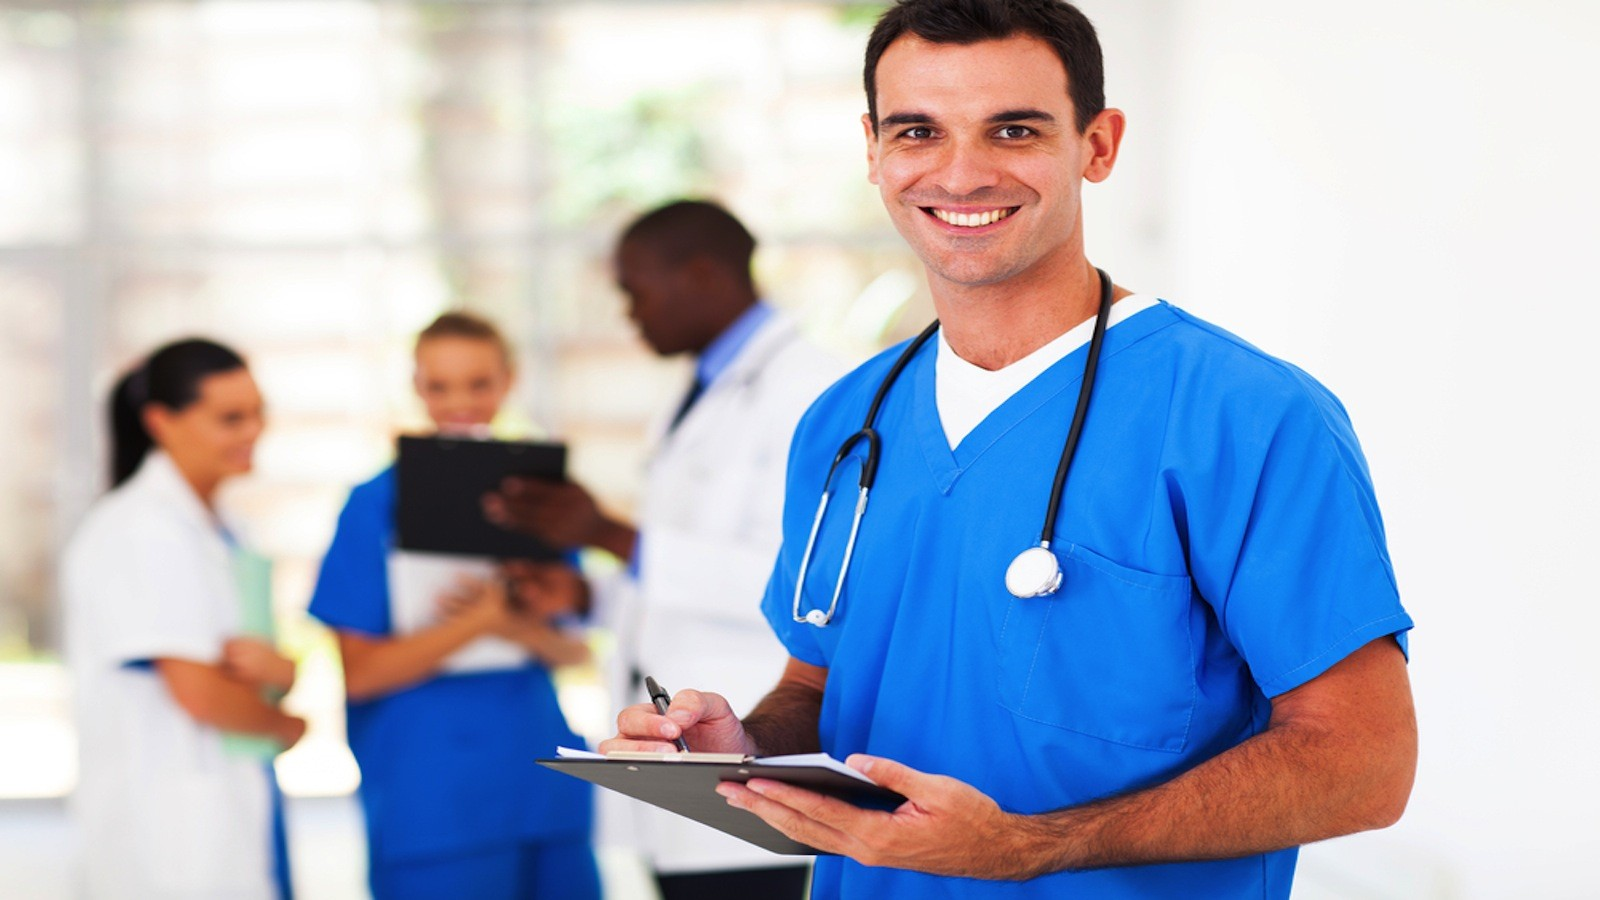 TOP 5 TIPS FOR THOSE NURSES WHO WORK ON THEIR FEET, 24 HOURS NON-STOP